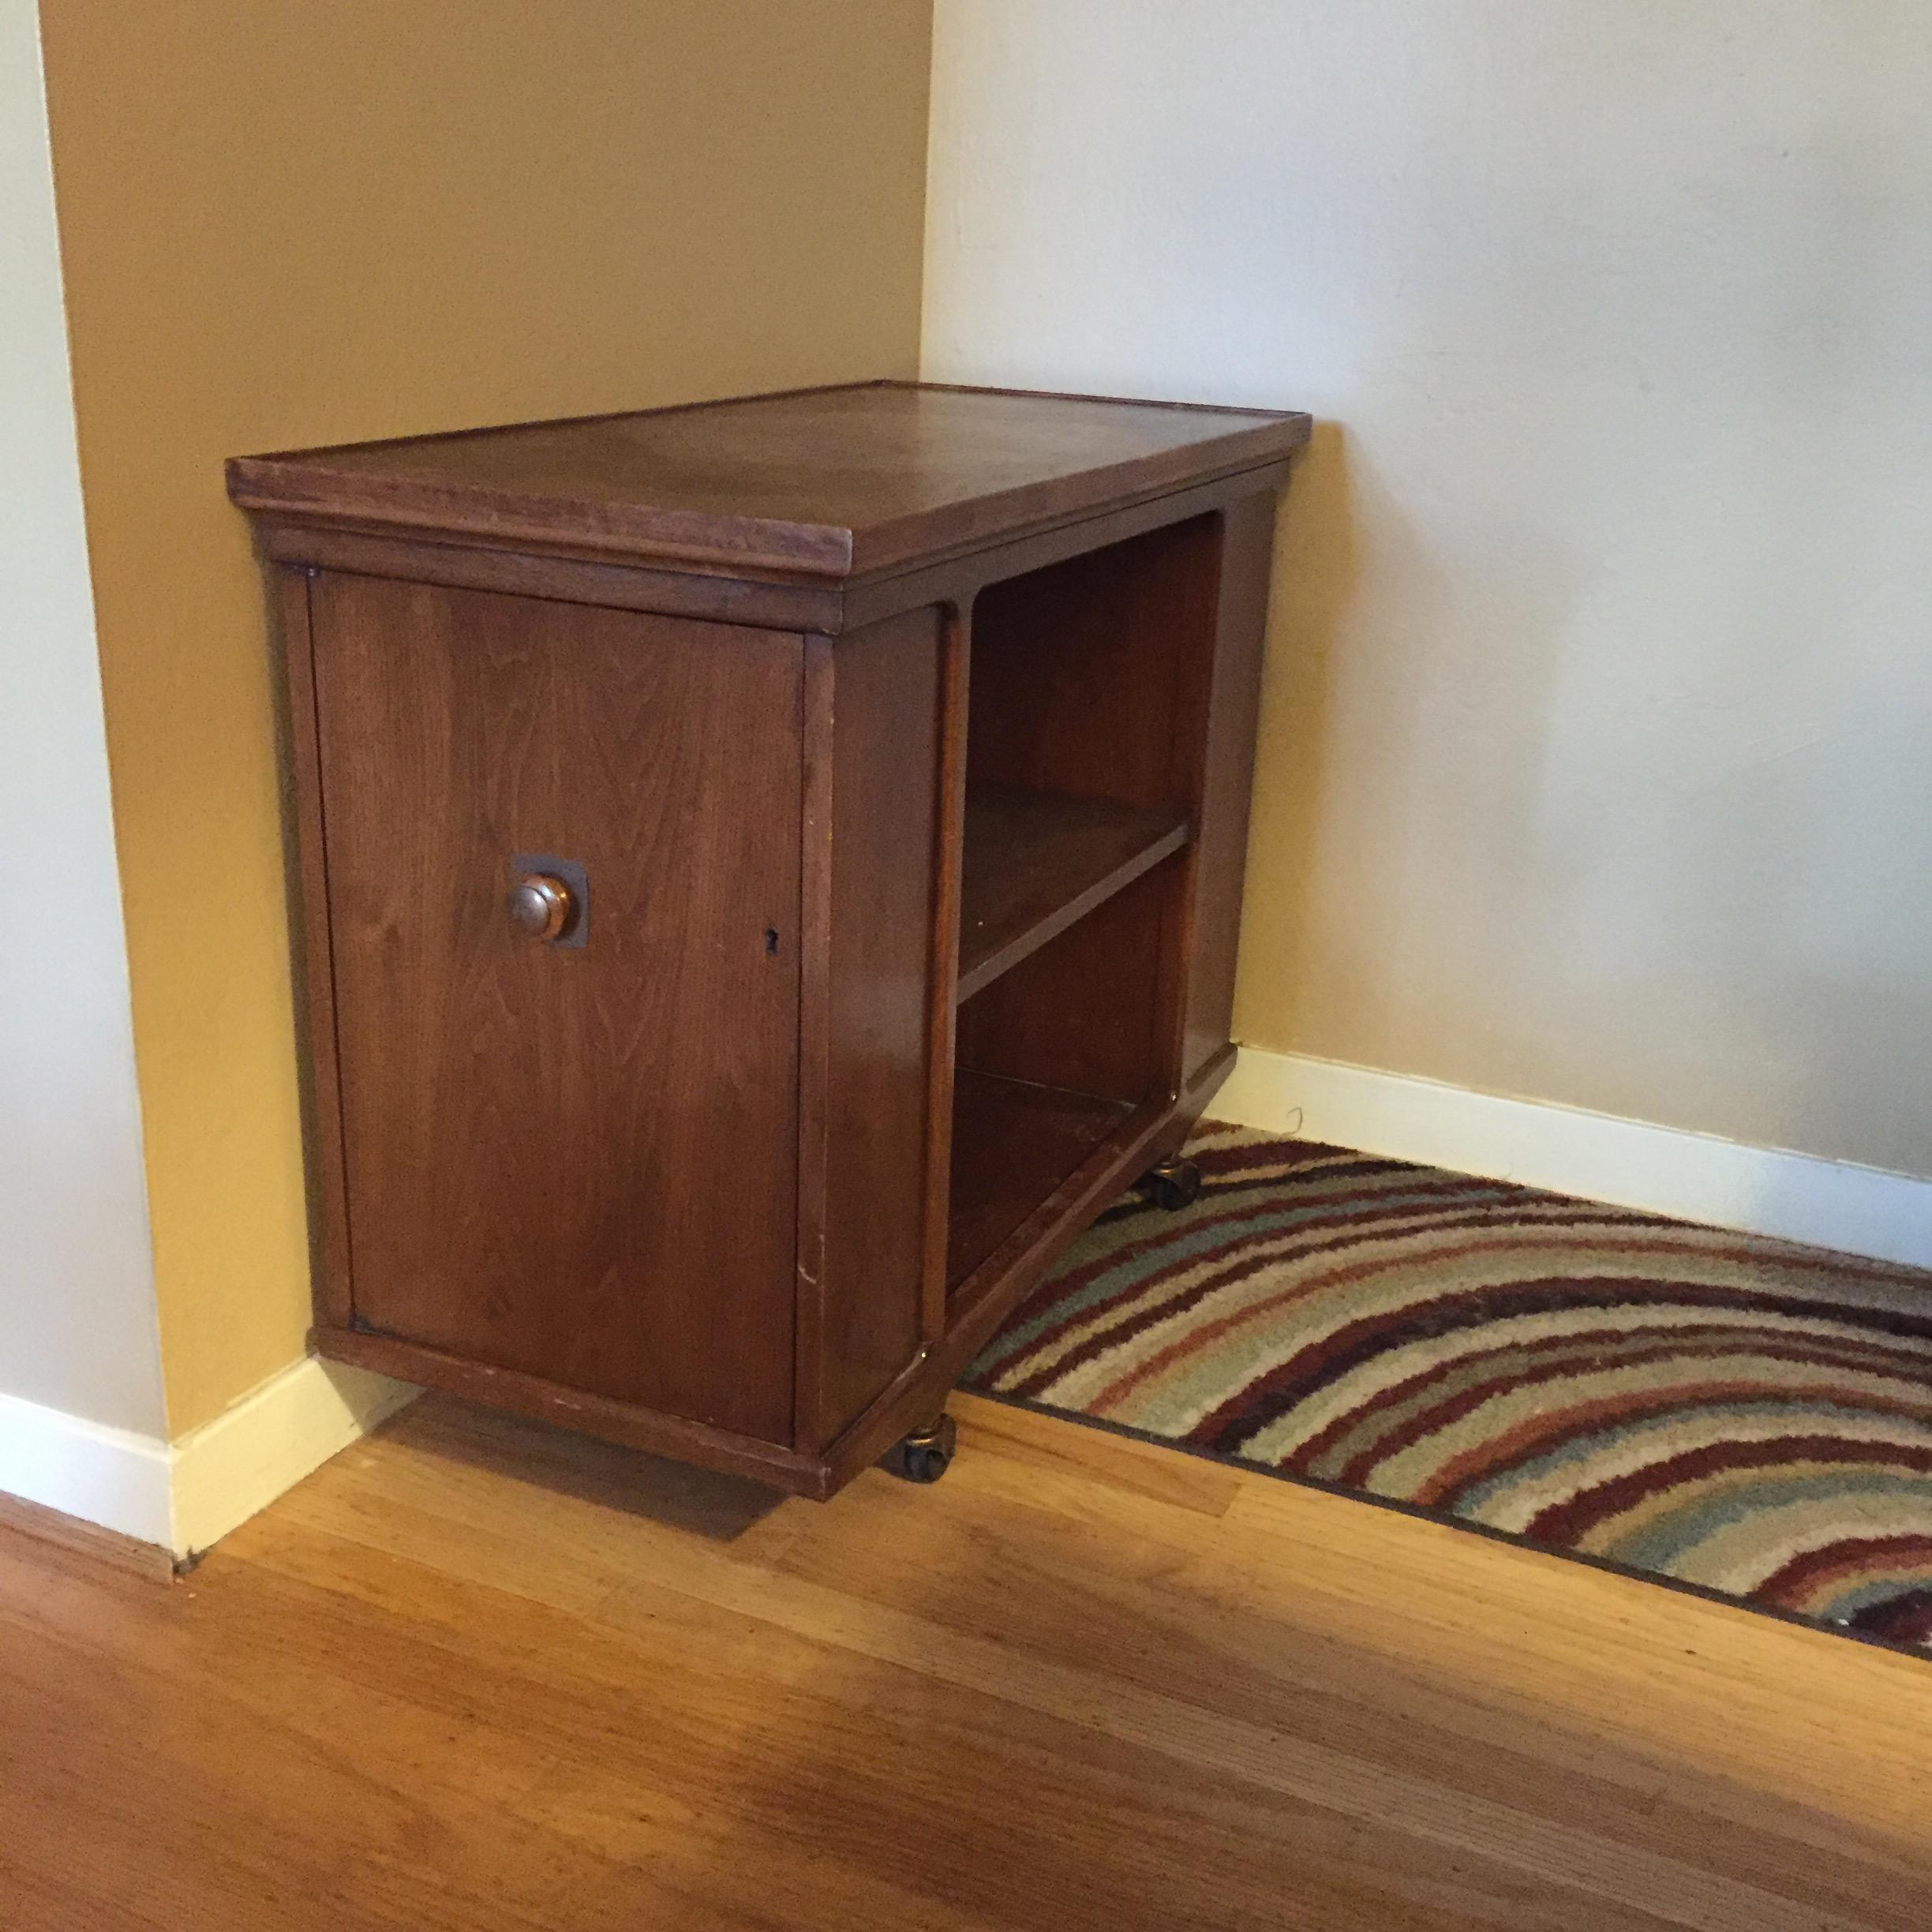 Antique Furniture Appraisal: Heritage Henredon Furniture Antique Appraisal